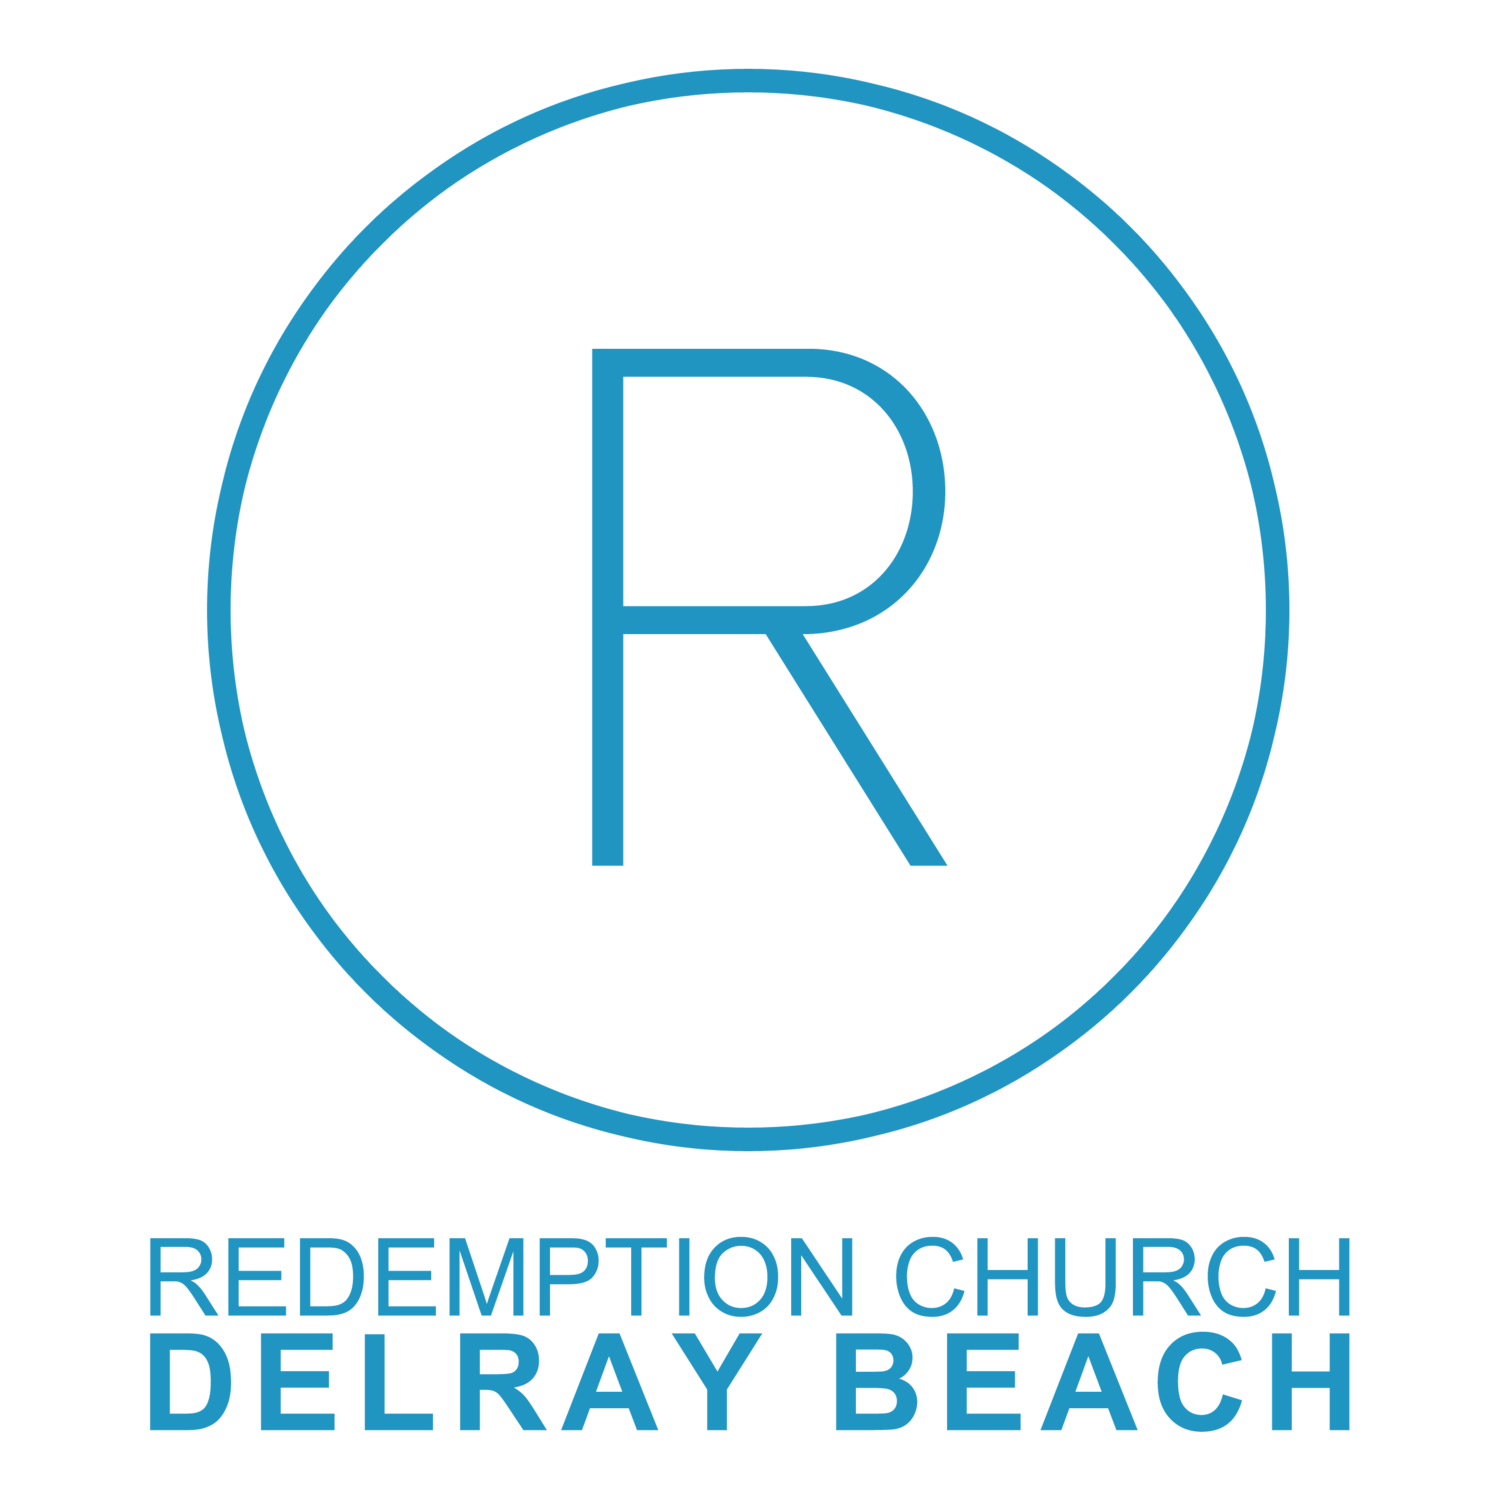 Redemption Church Delray Beach - Acts 16 | Direction